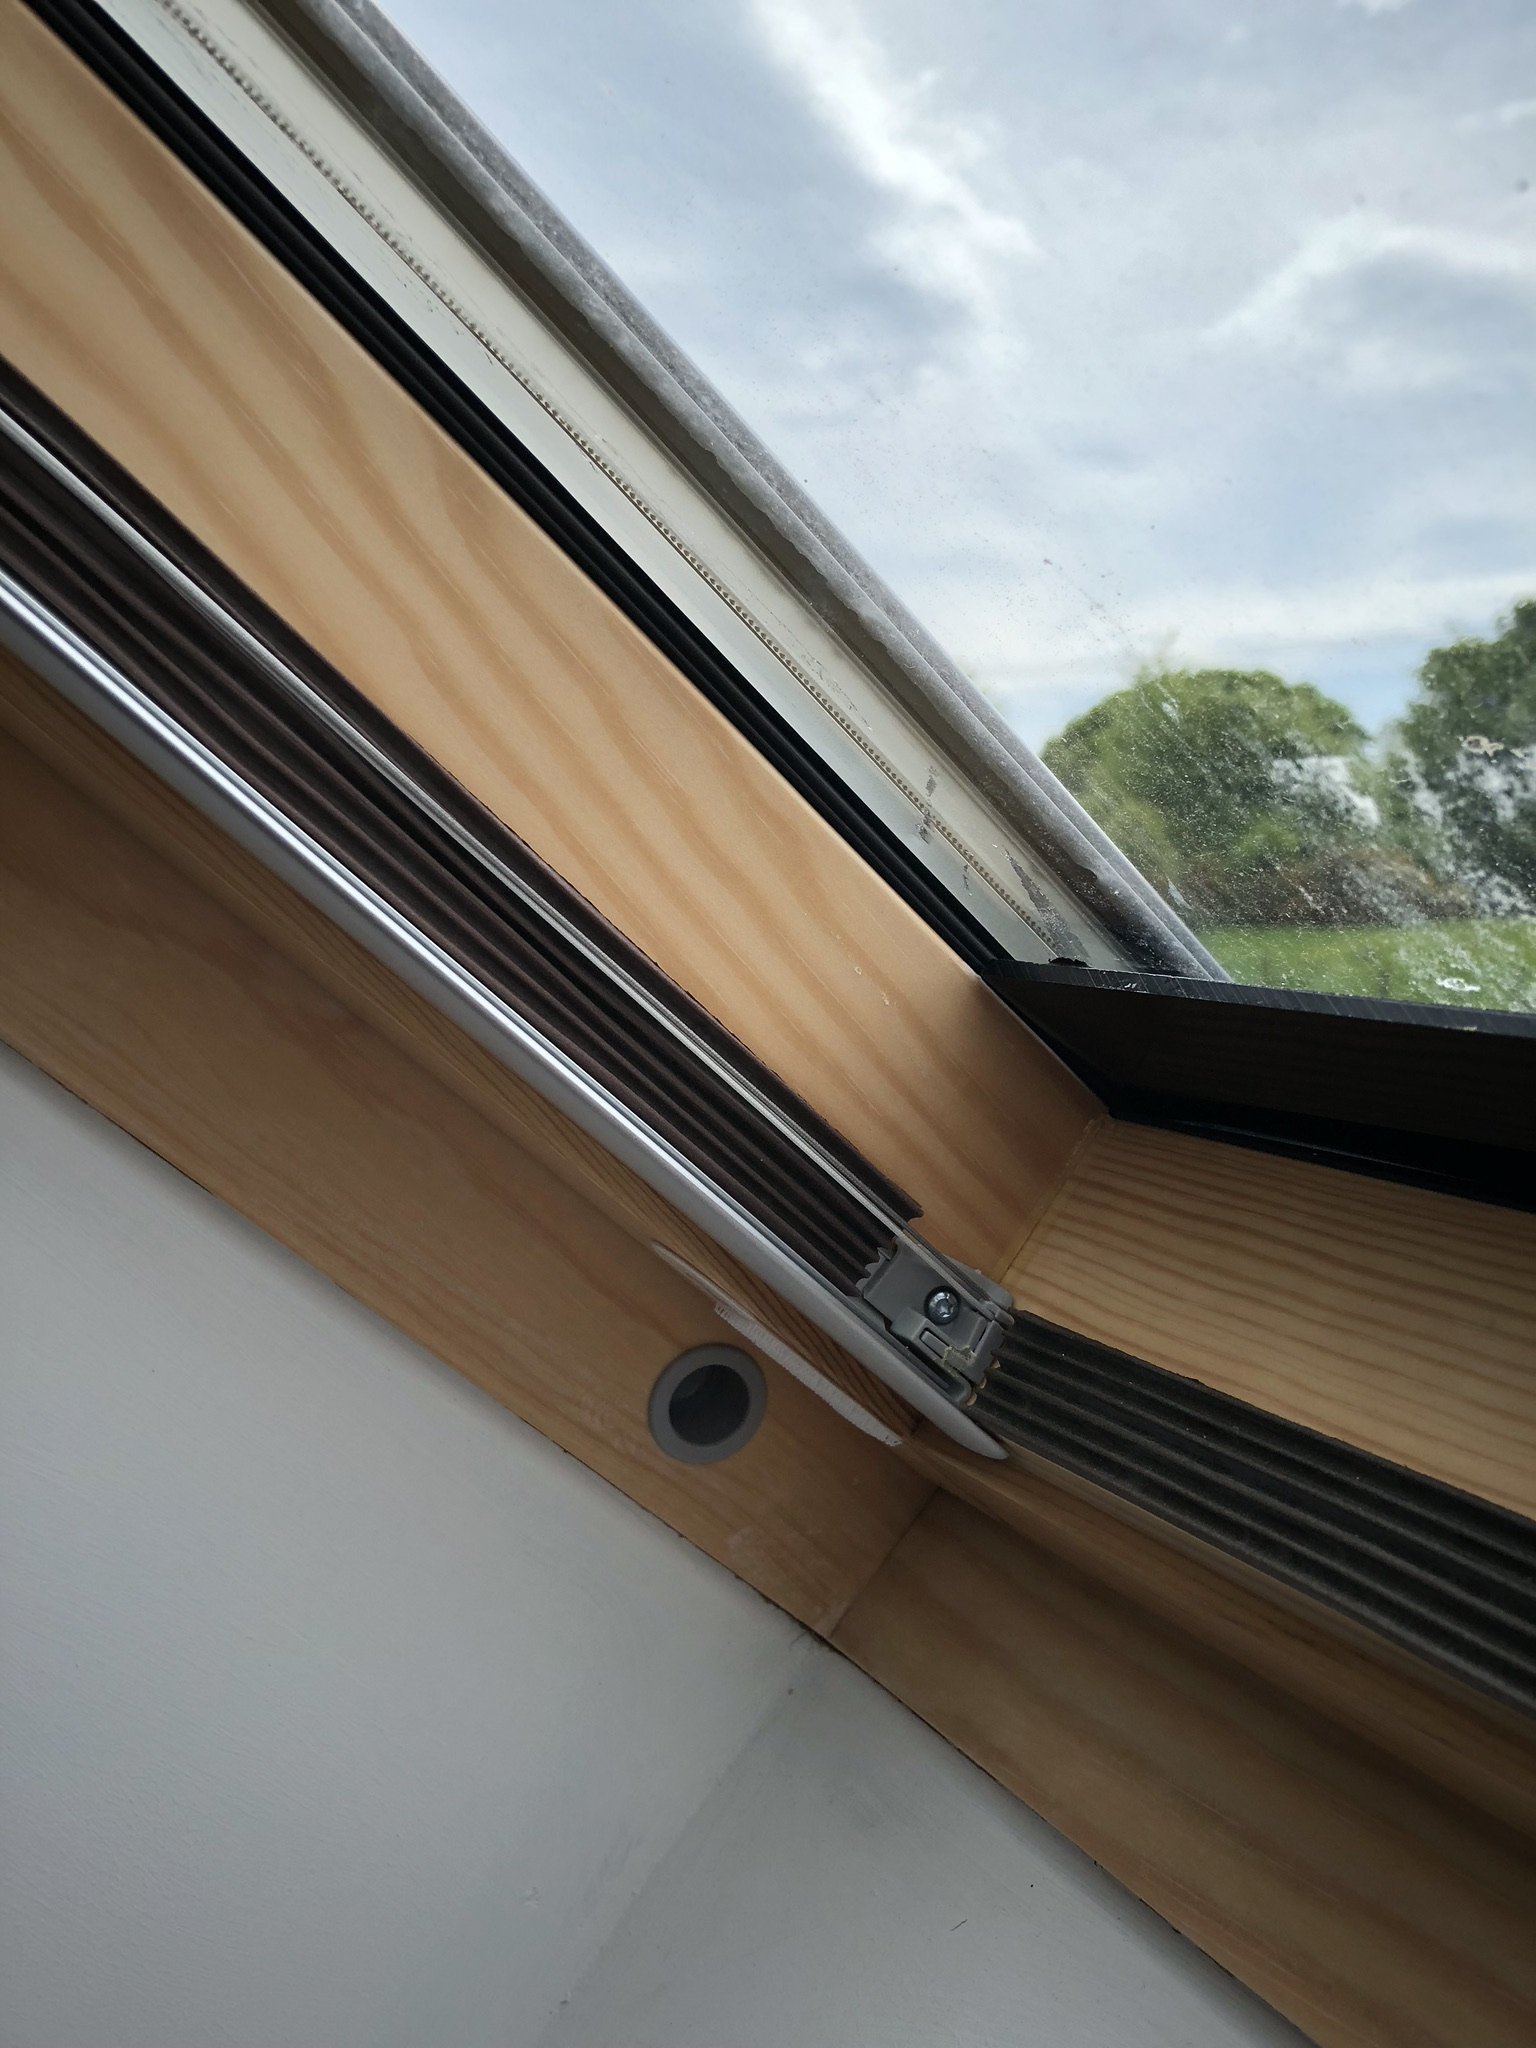 stick the E shape draught excluder down the side channel of the blind, flush with the front lip.